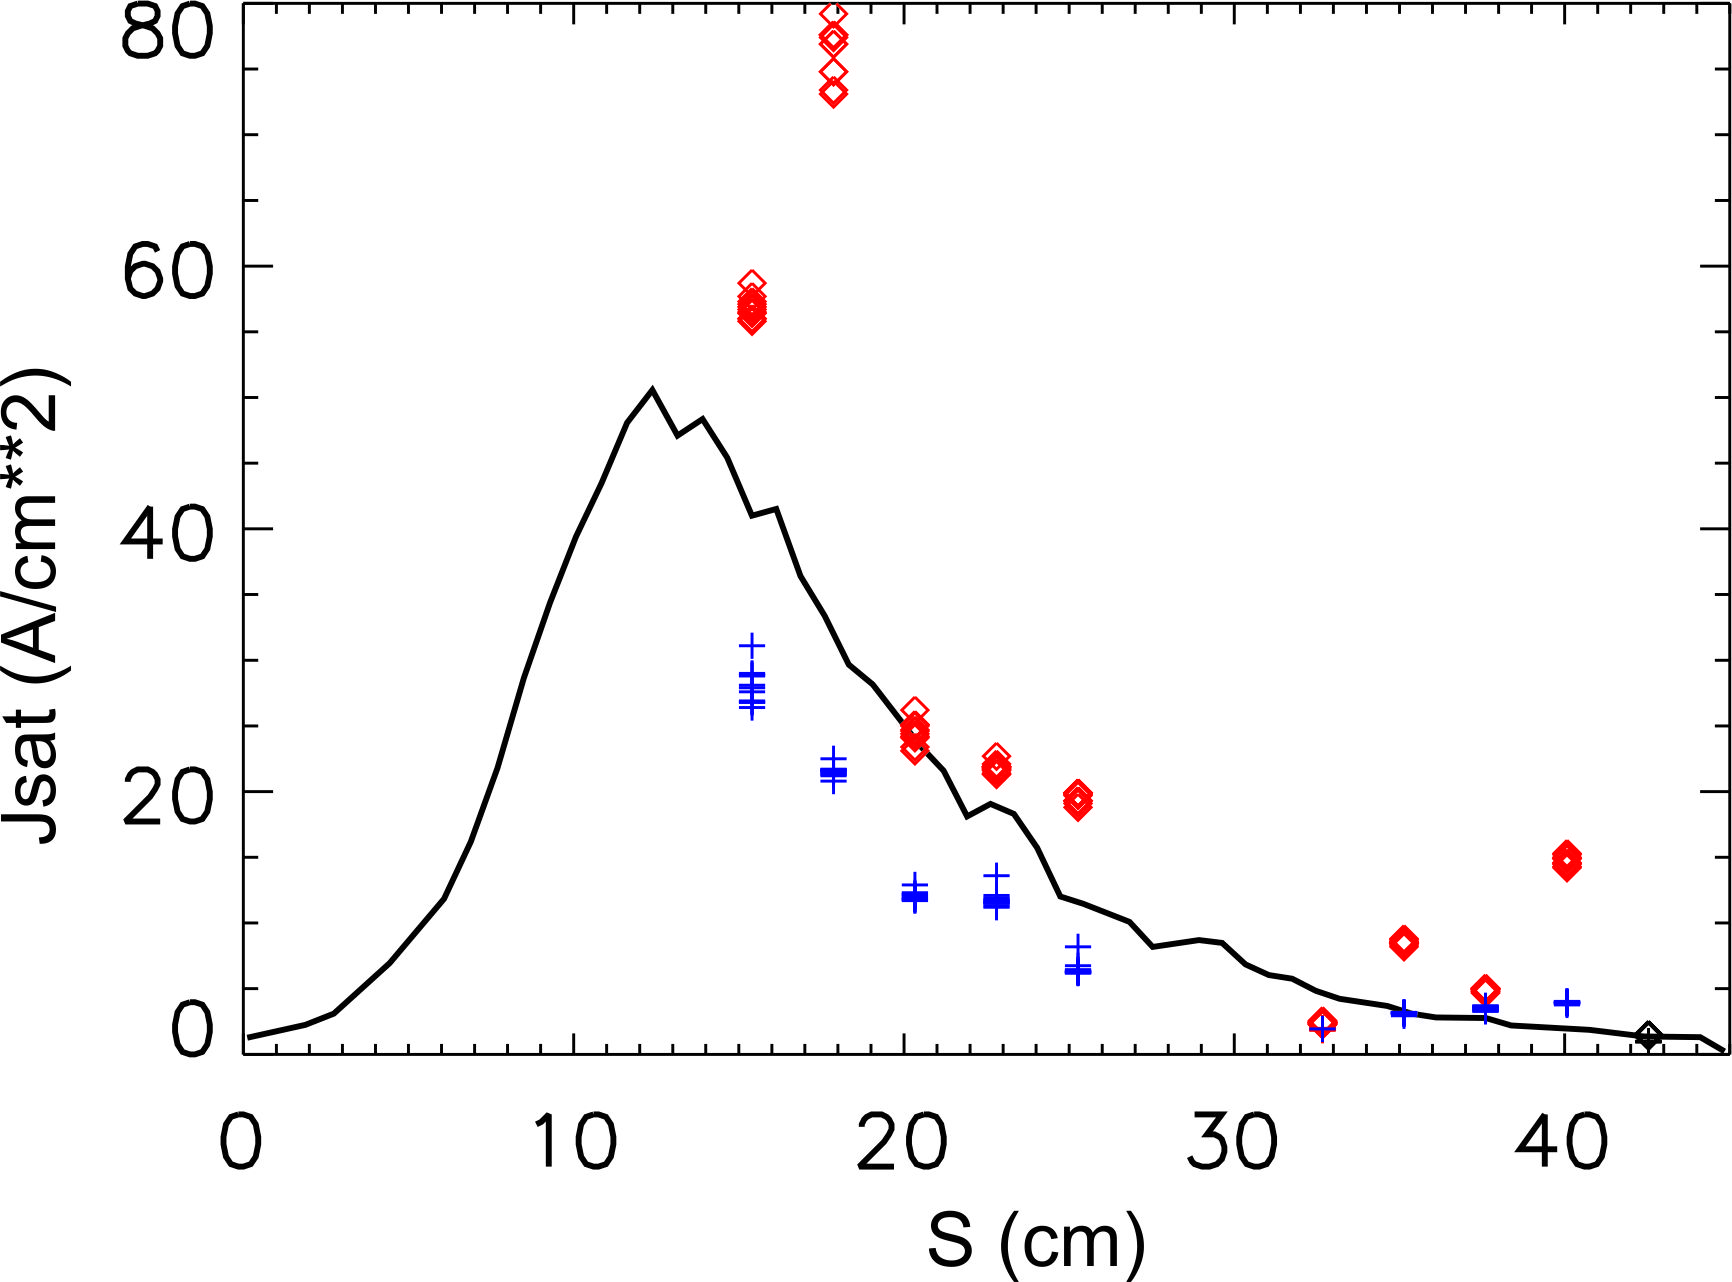 Comparison of the parallel particle flux density between EMC3-Eirene (black solid lines) and the Langmuir probes on a lower (red rhombus) and upper (blue plus) target for #20180814.25 at t=2.5 s (standard divertor configuration without island control coils). The S-coordinate on the horizontal axis is the distance from the divertor gap.